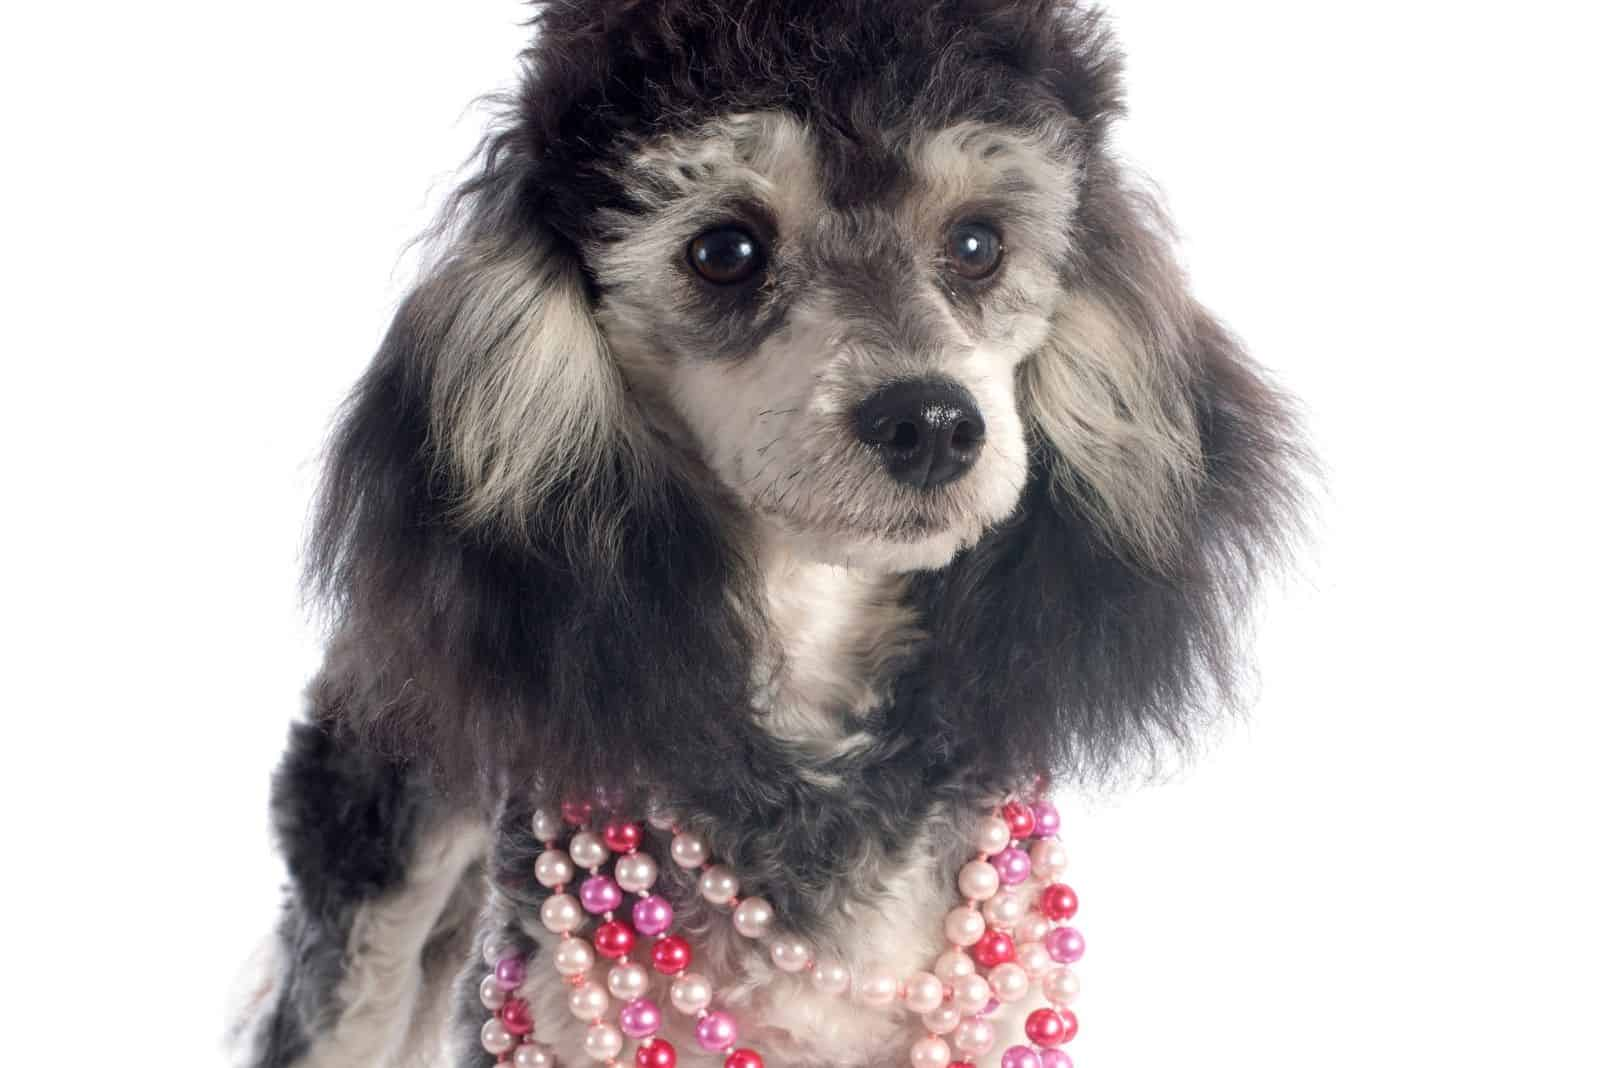 phantom poodle dog adorned with necklace standing in white background